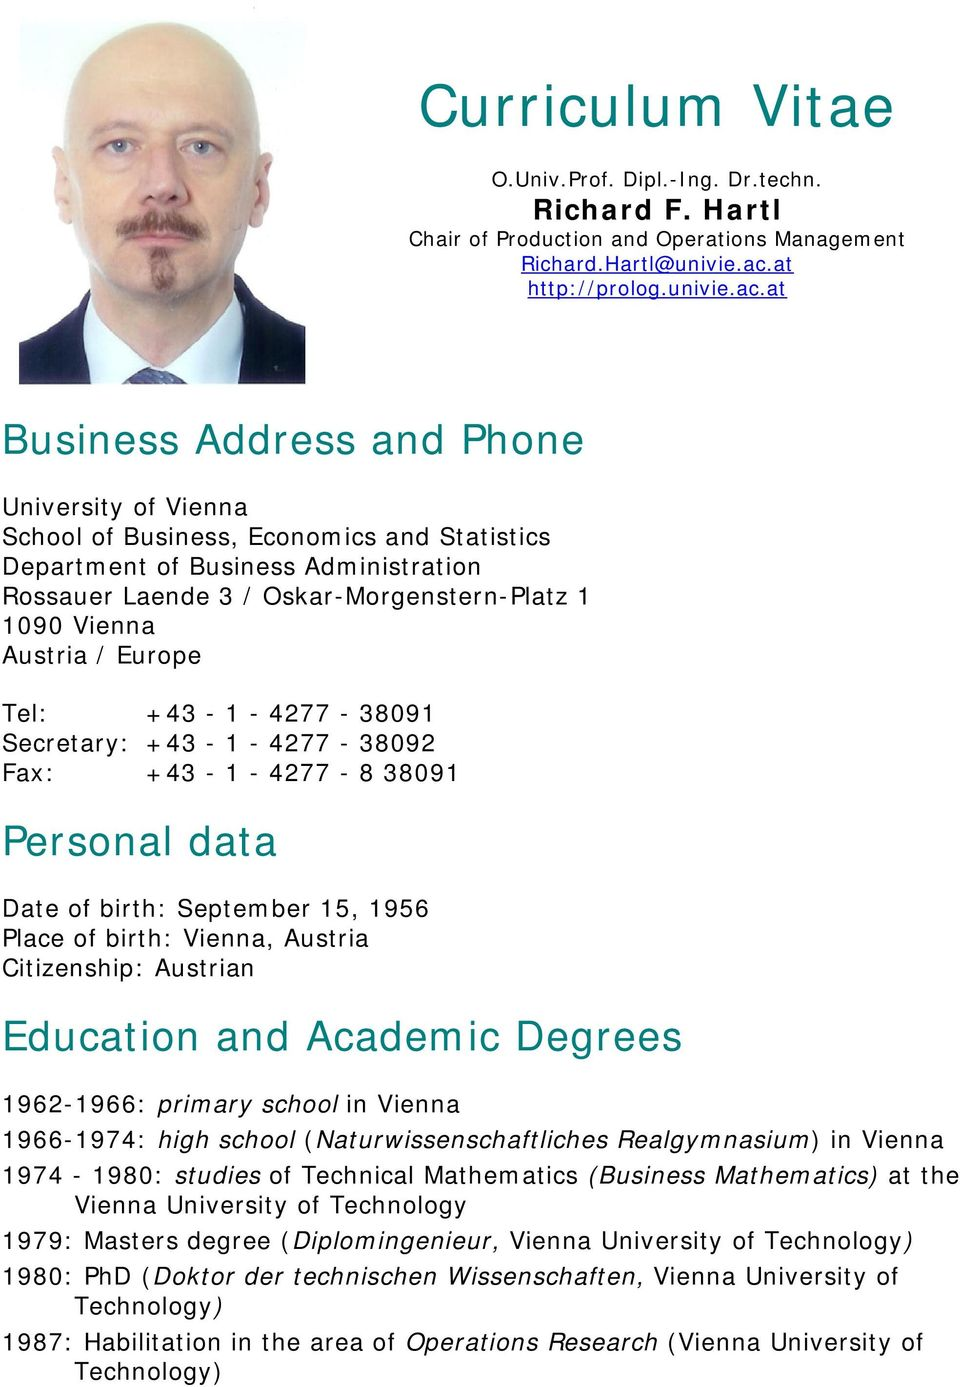 at Business Address and Phone University of Vienna School of Business, Economics and Statistics Department of Business Administration Rossauer Laende 3 / Oskar-Morgenstern-Platz 1 1090 Vienna Austria